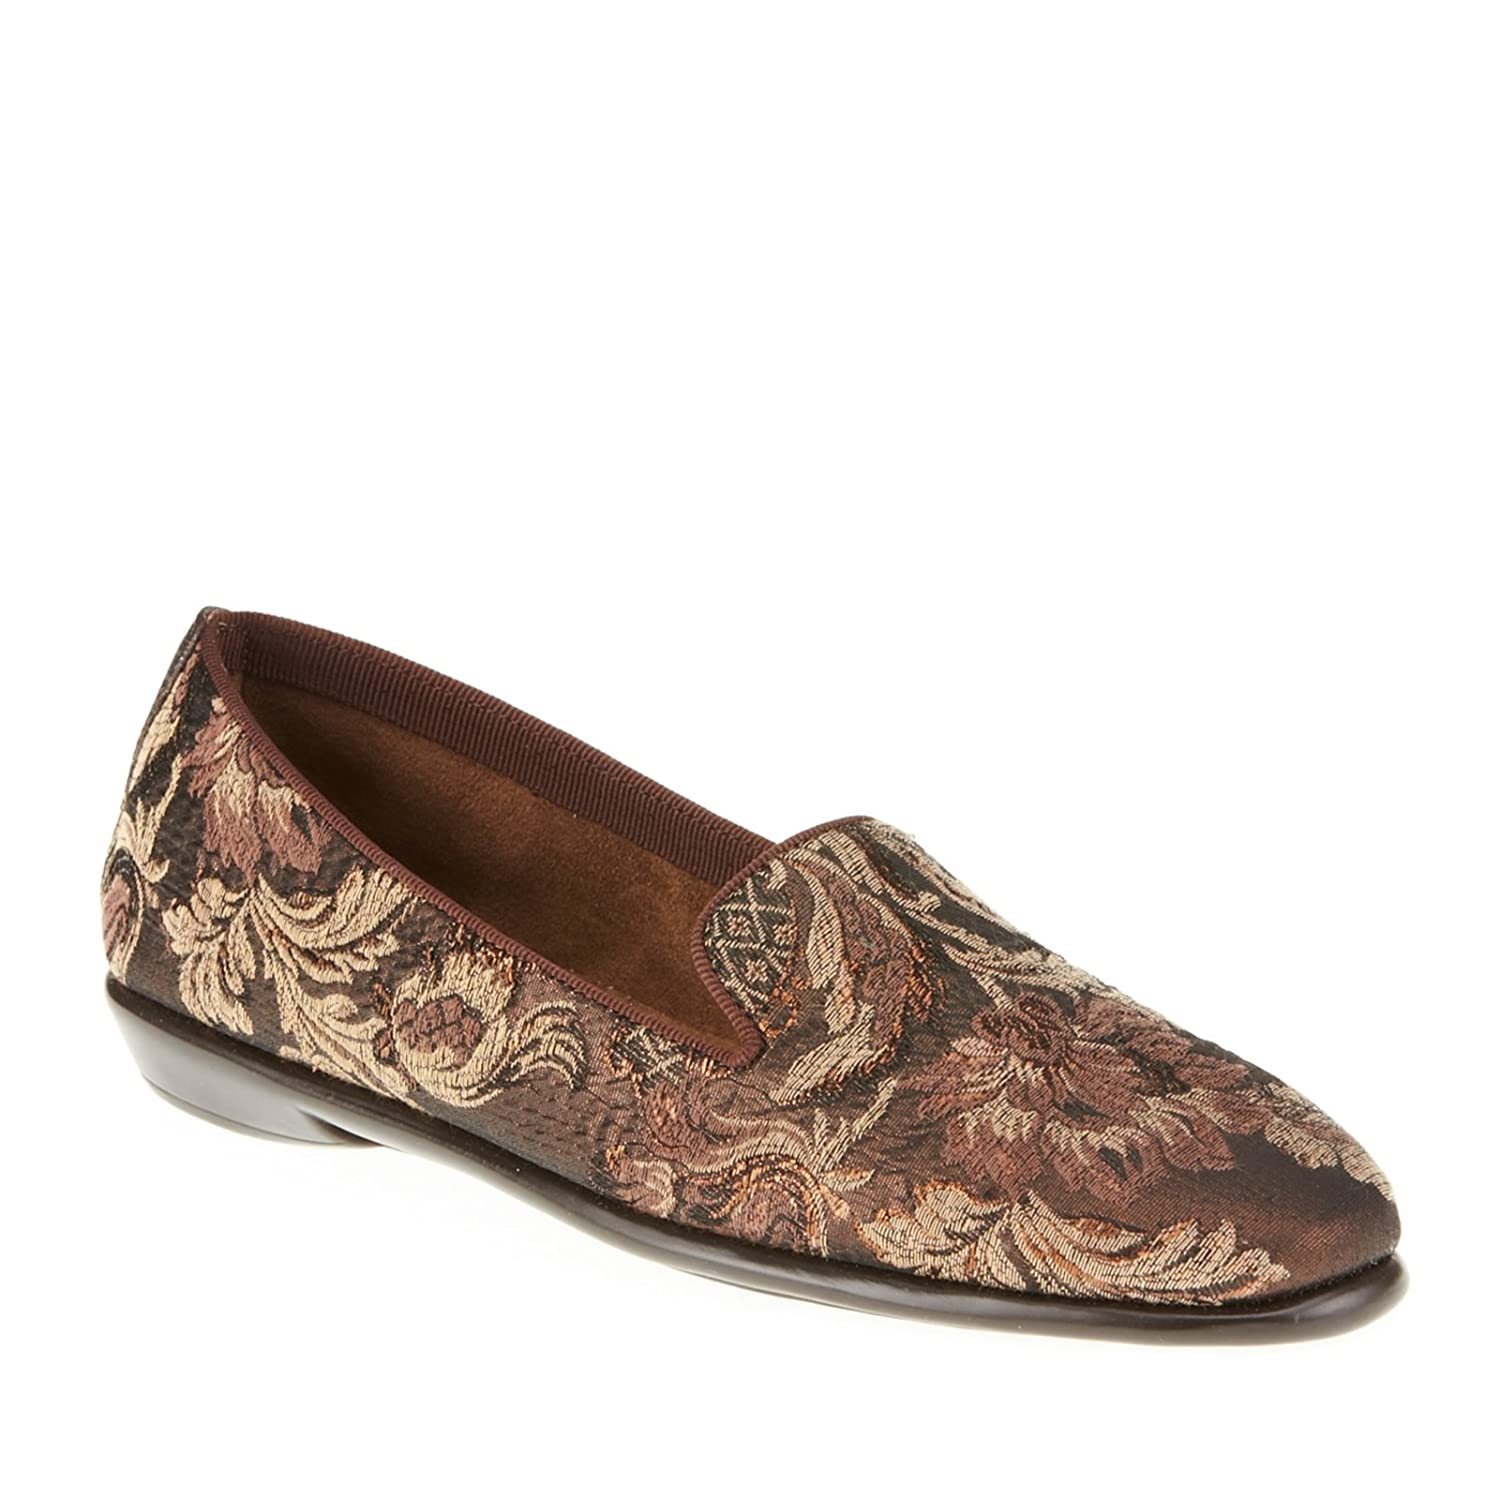 Aerosoles Women's Betunia